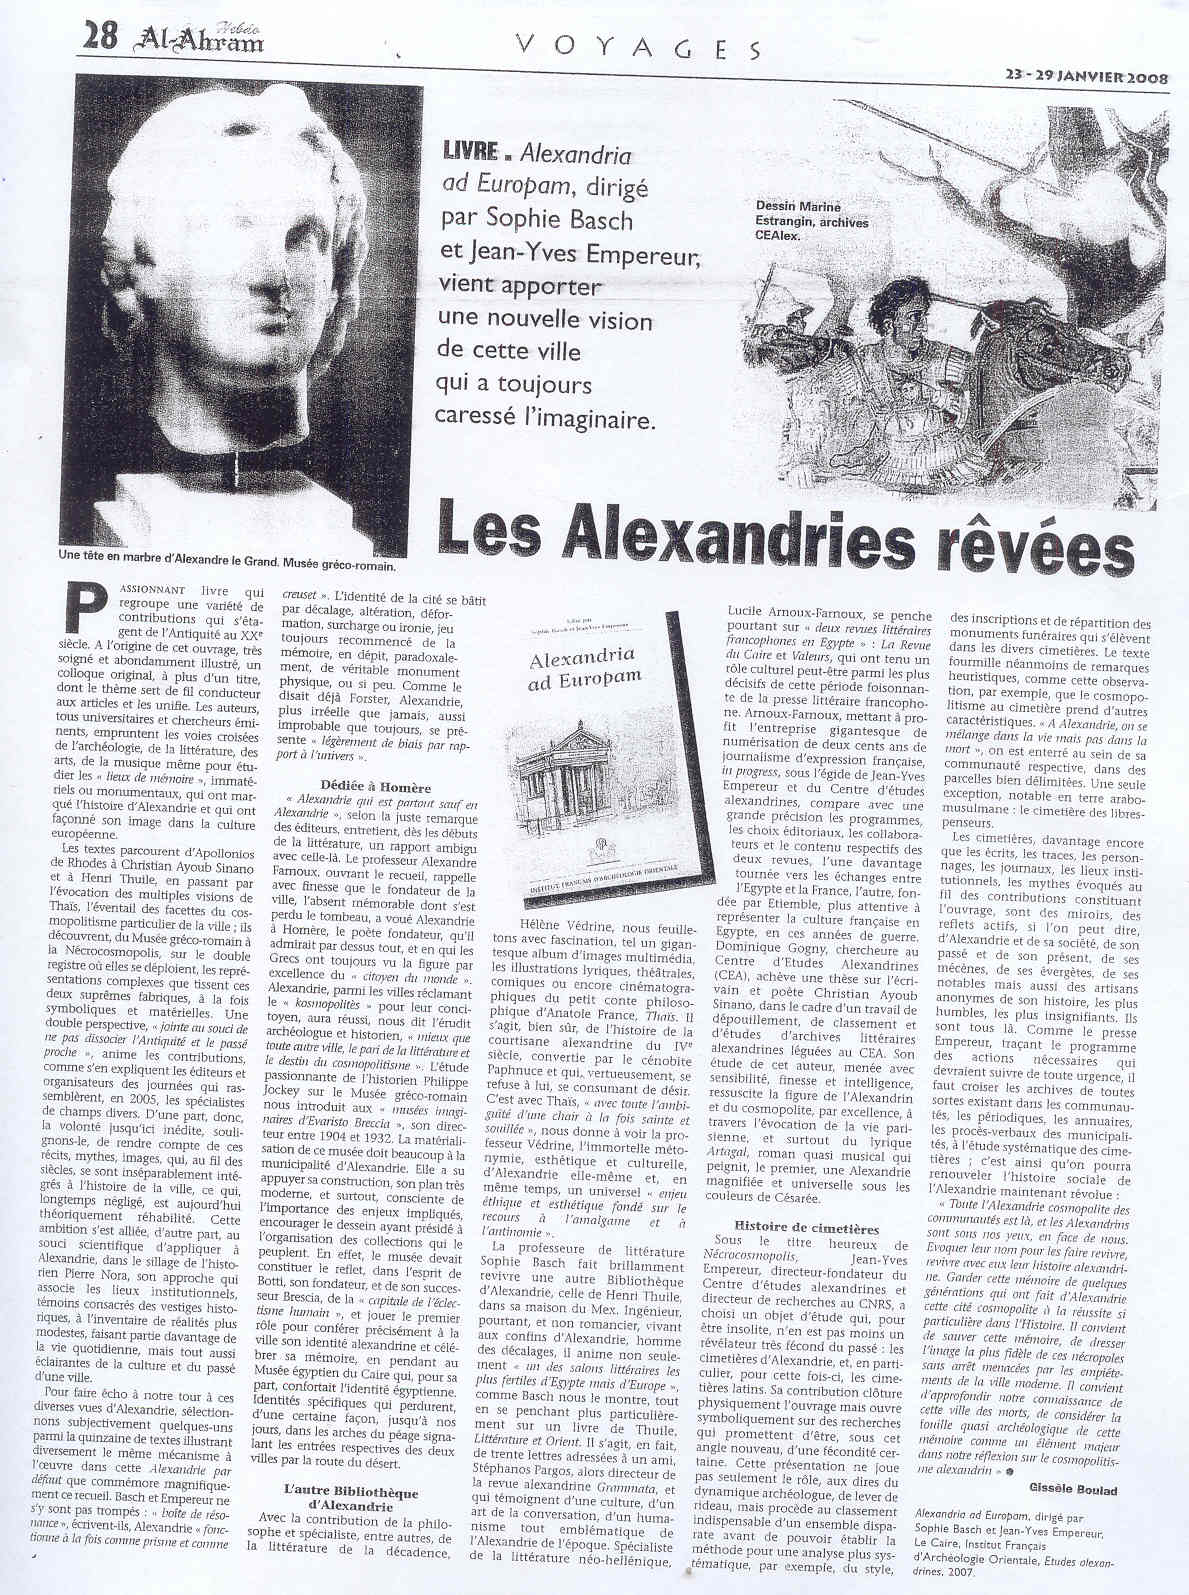 Les Alexandries Revees